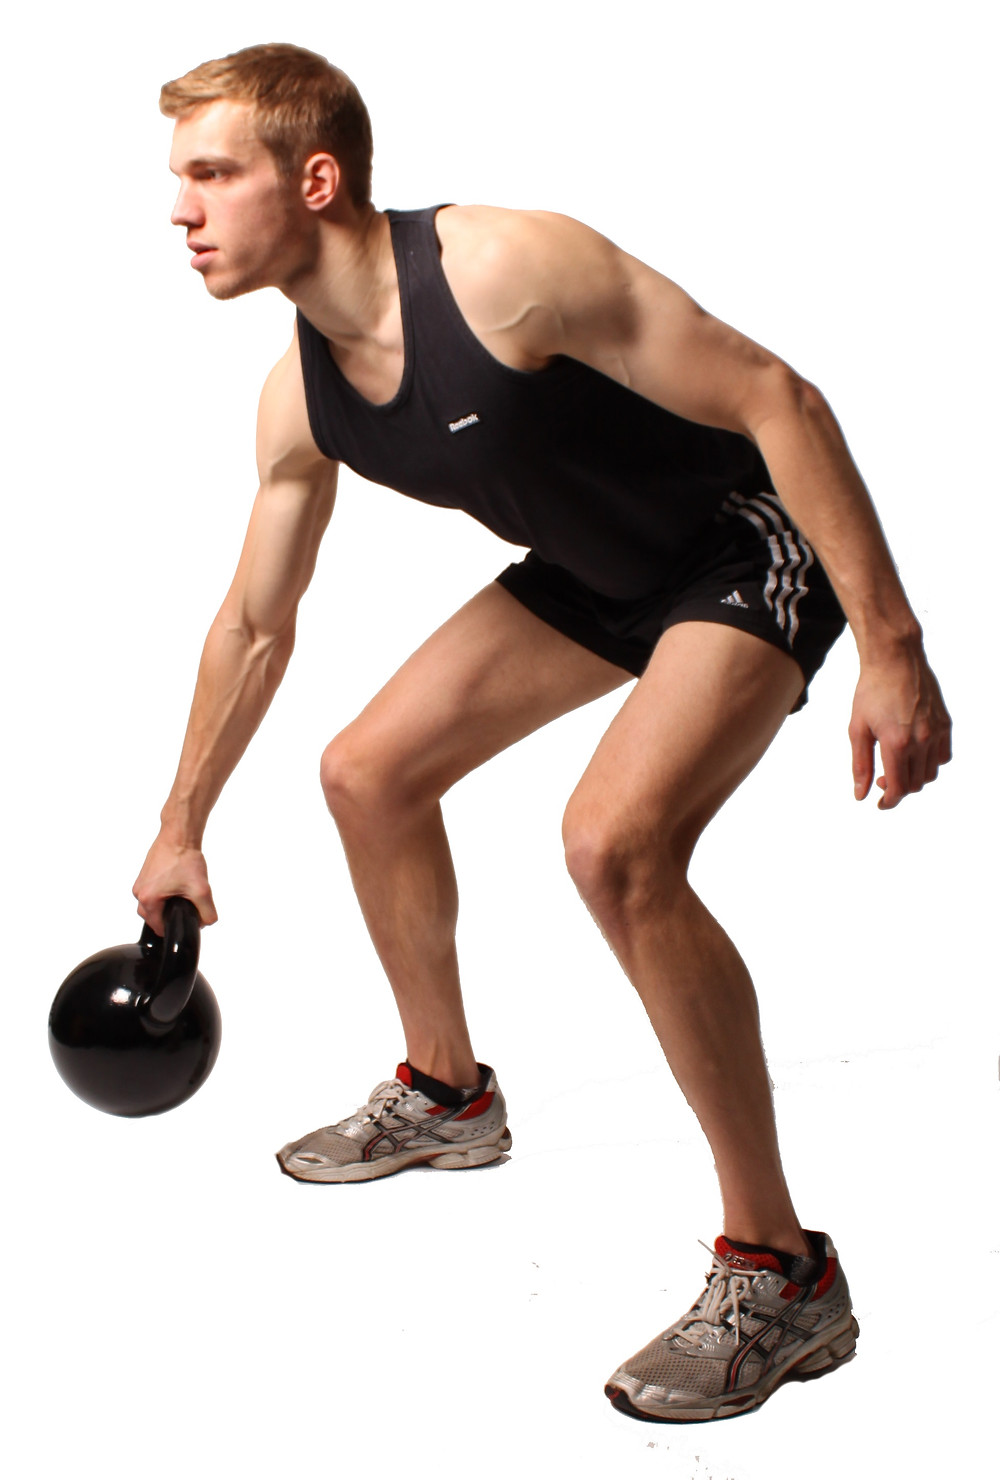 a man performing the kettlebell under the leg pass exercise